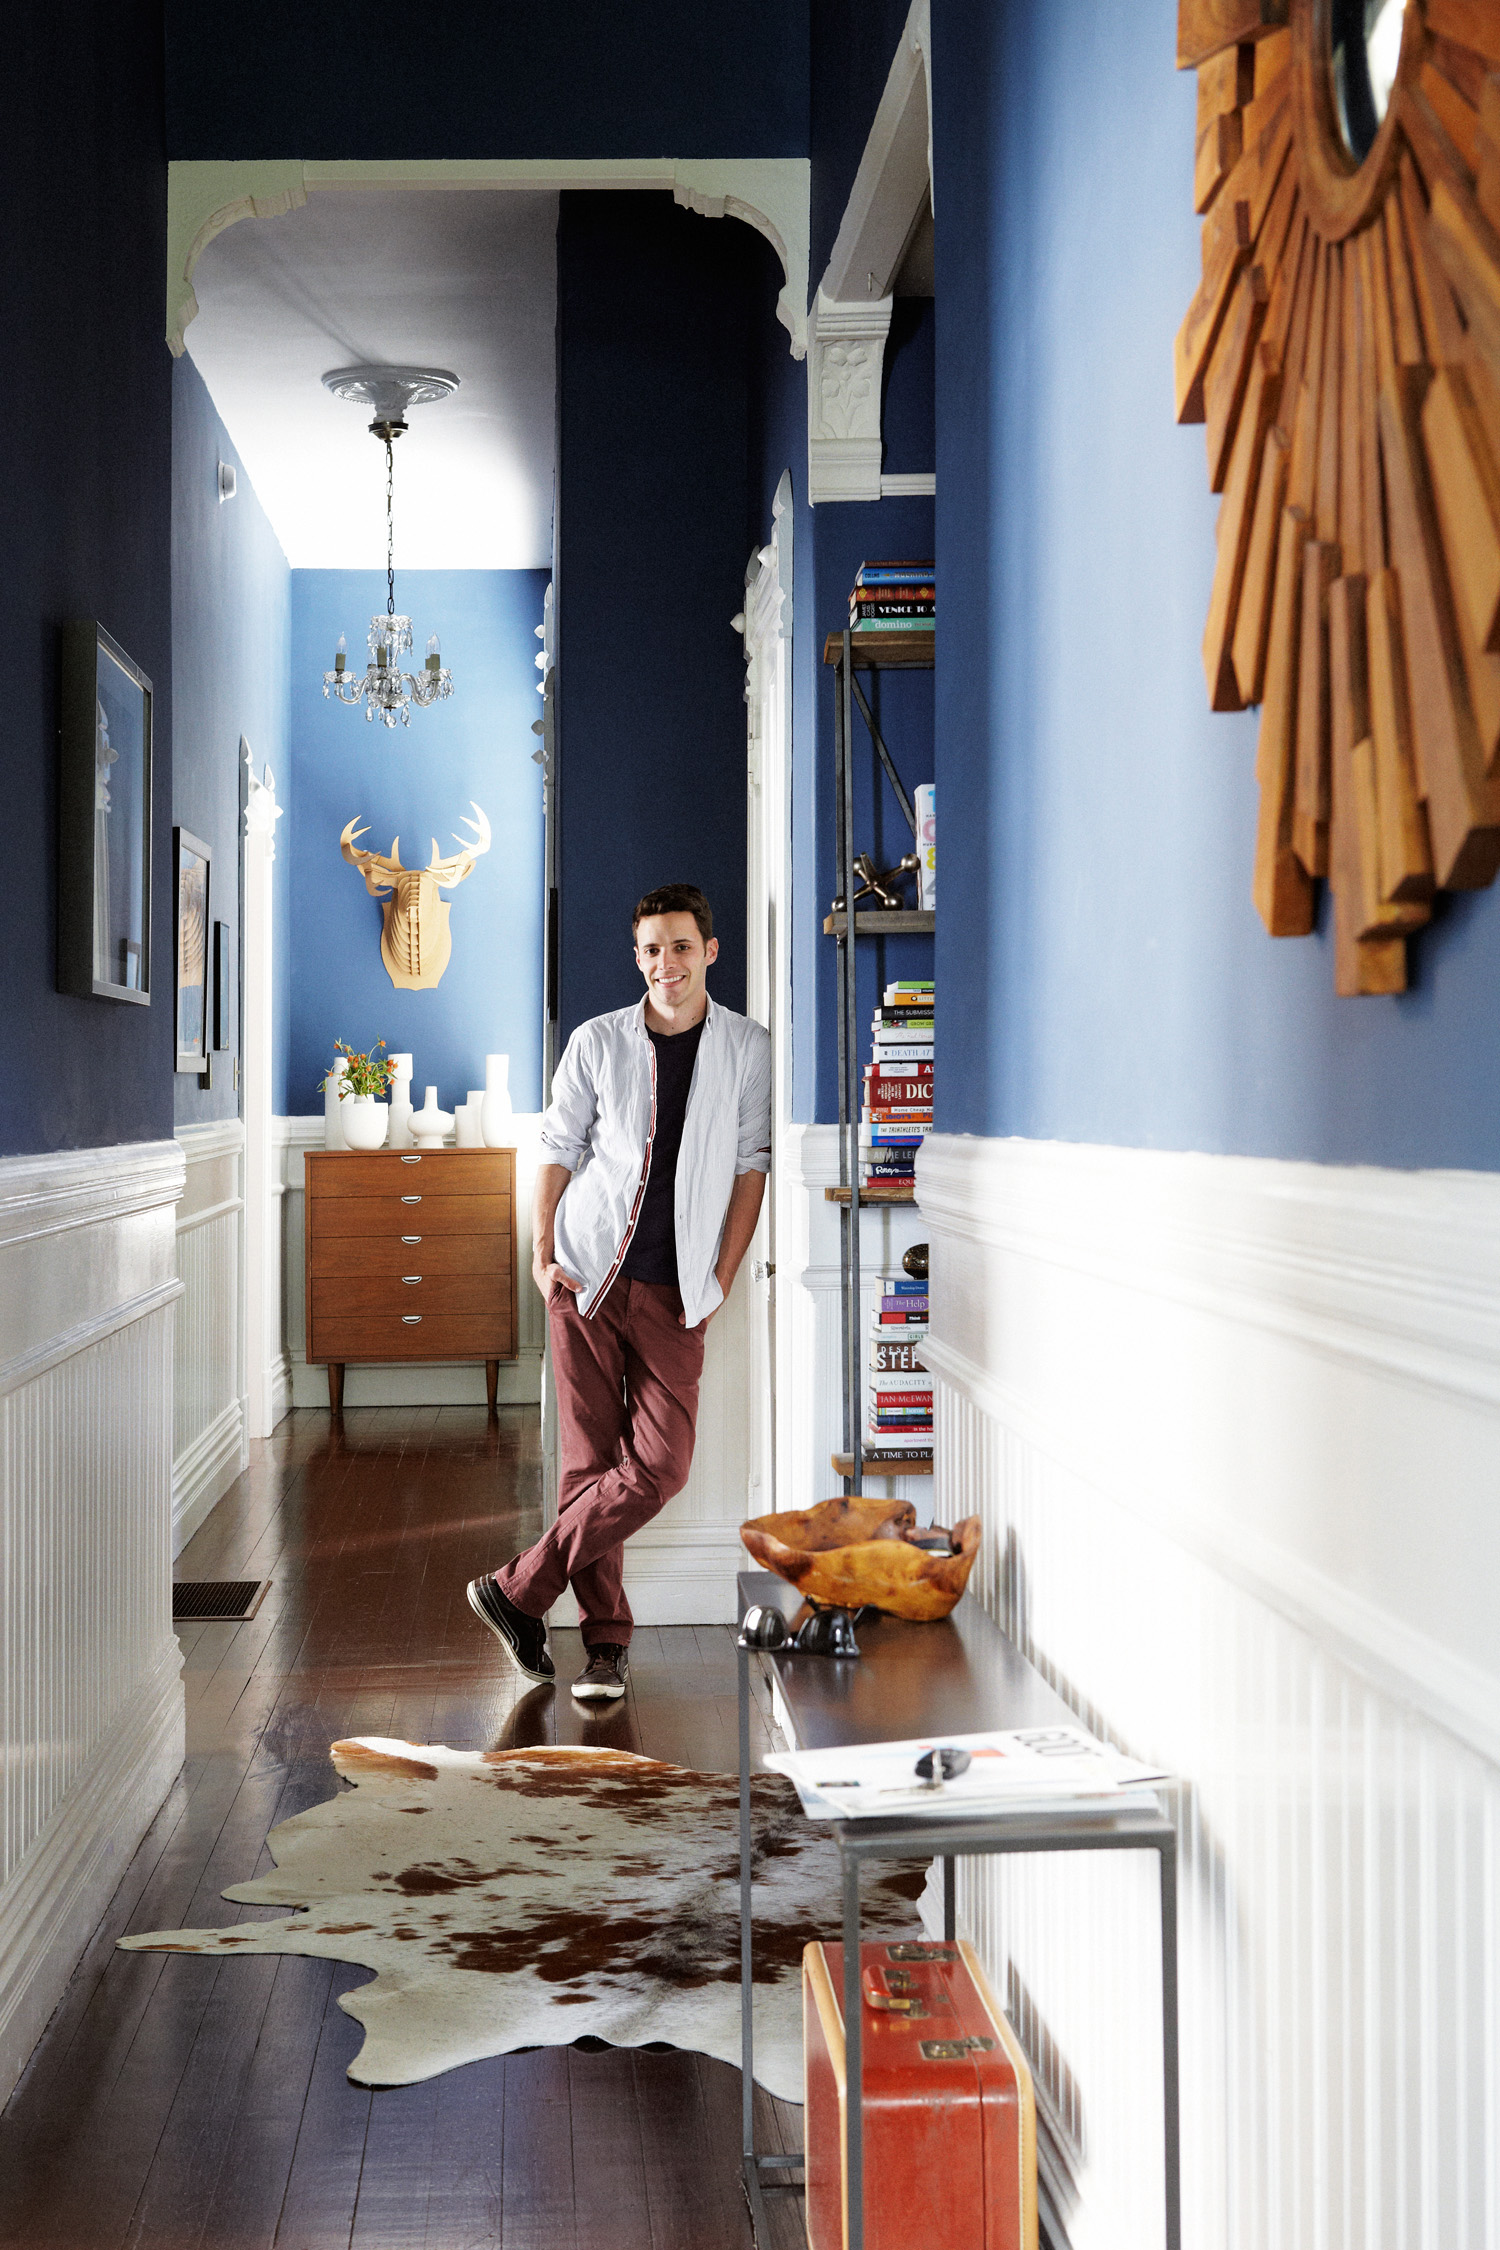 Rental Home Decorating Ideas: 10 Tips On Decorating A Rental